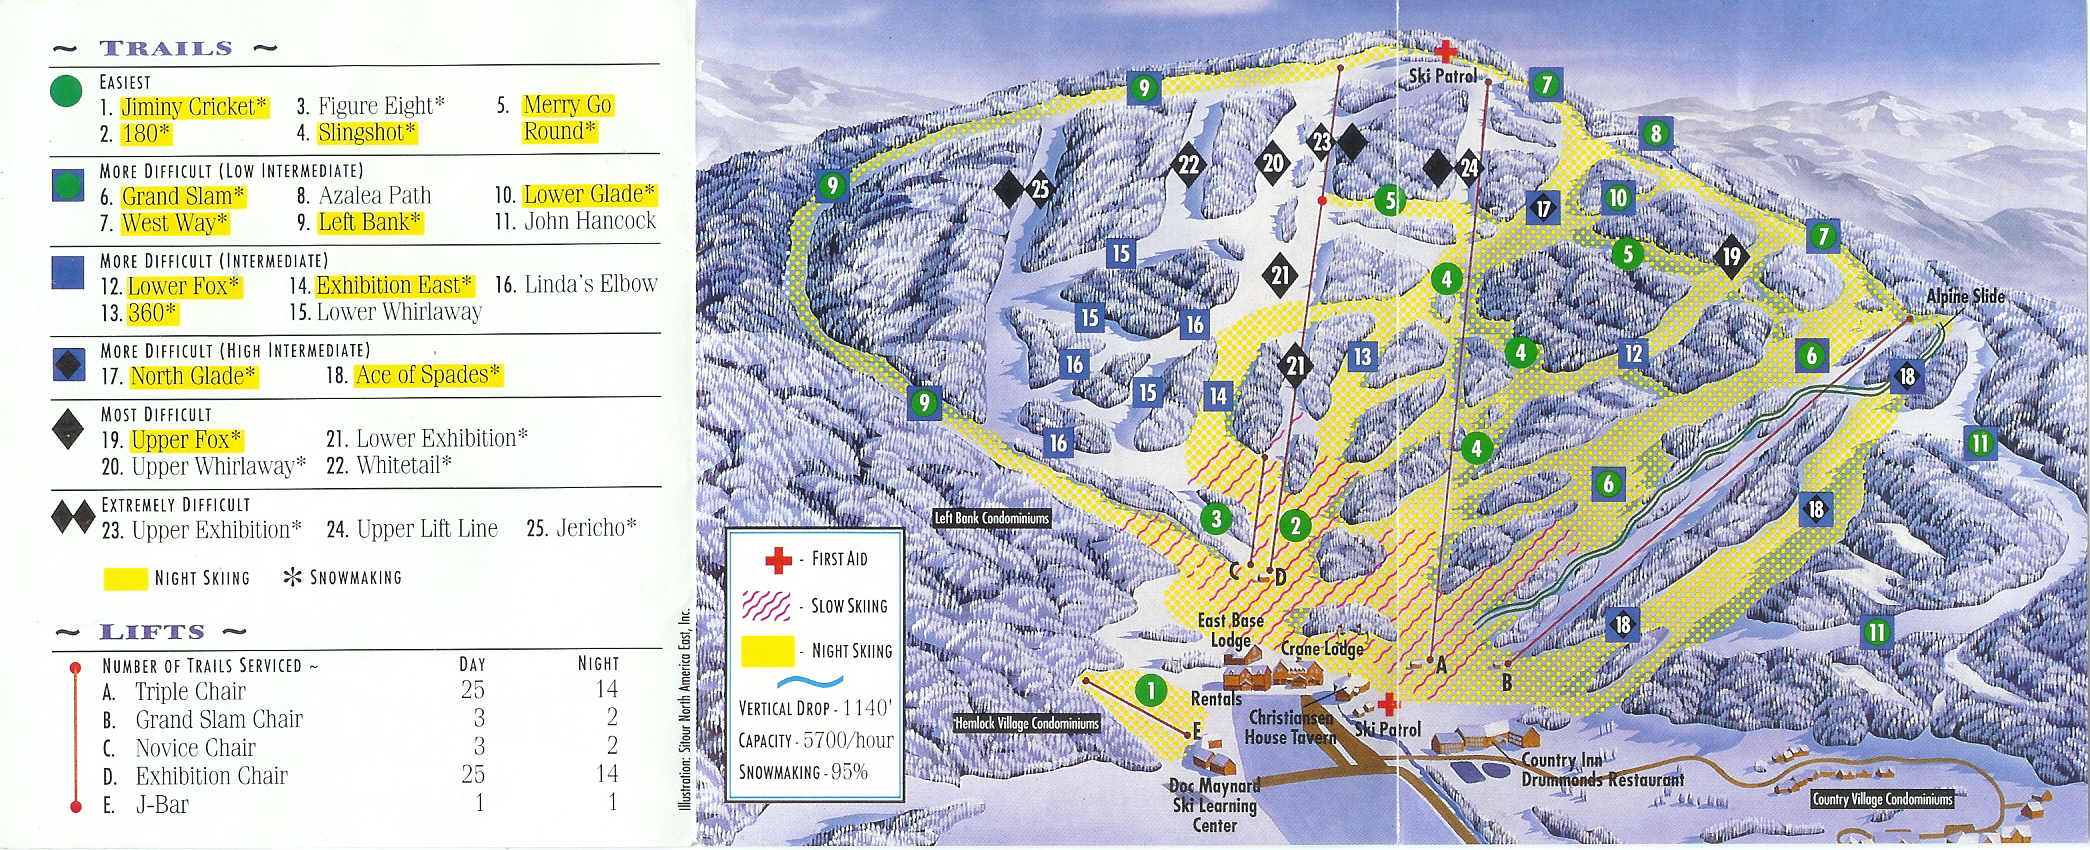 jiminy peak resort - skimap